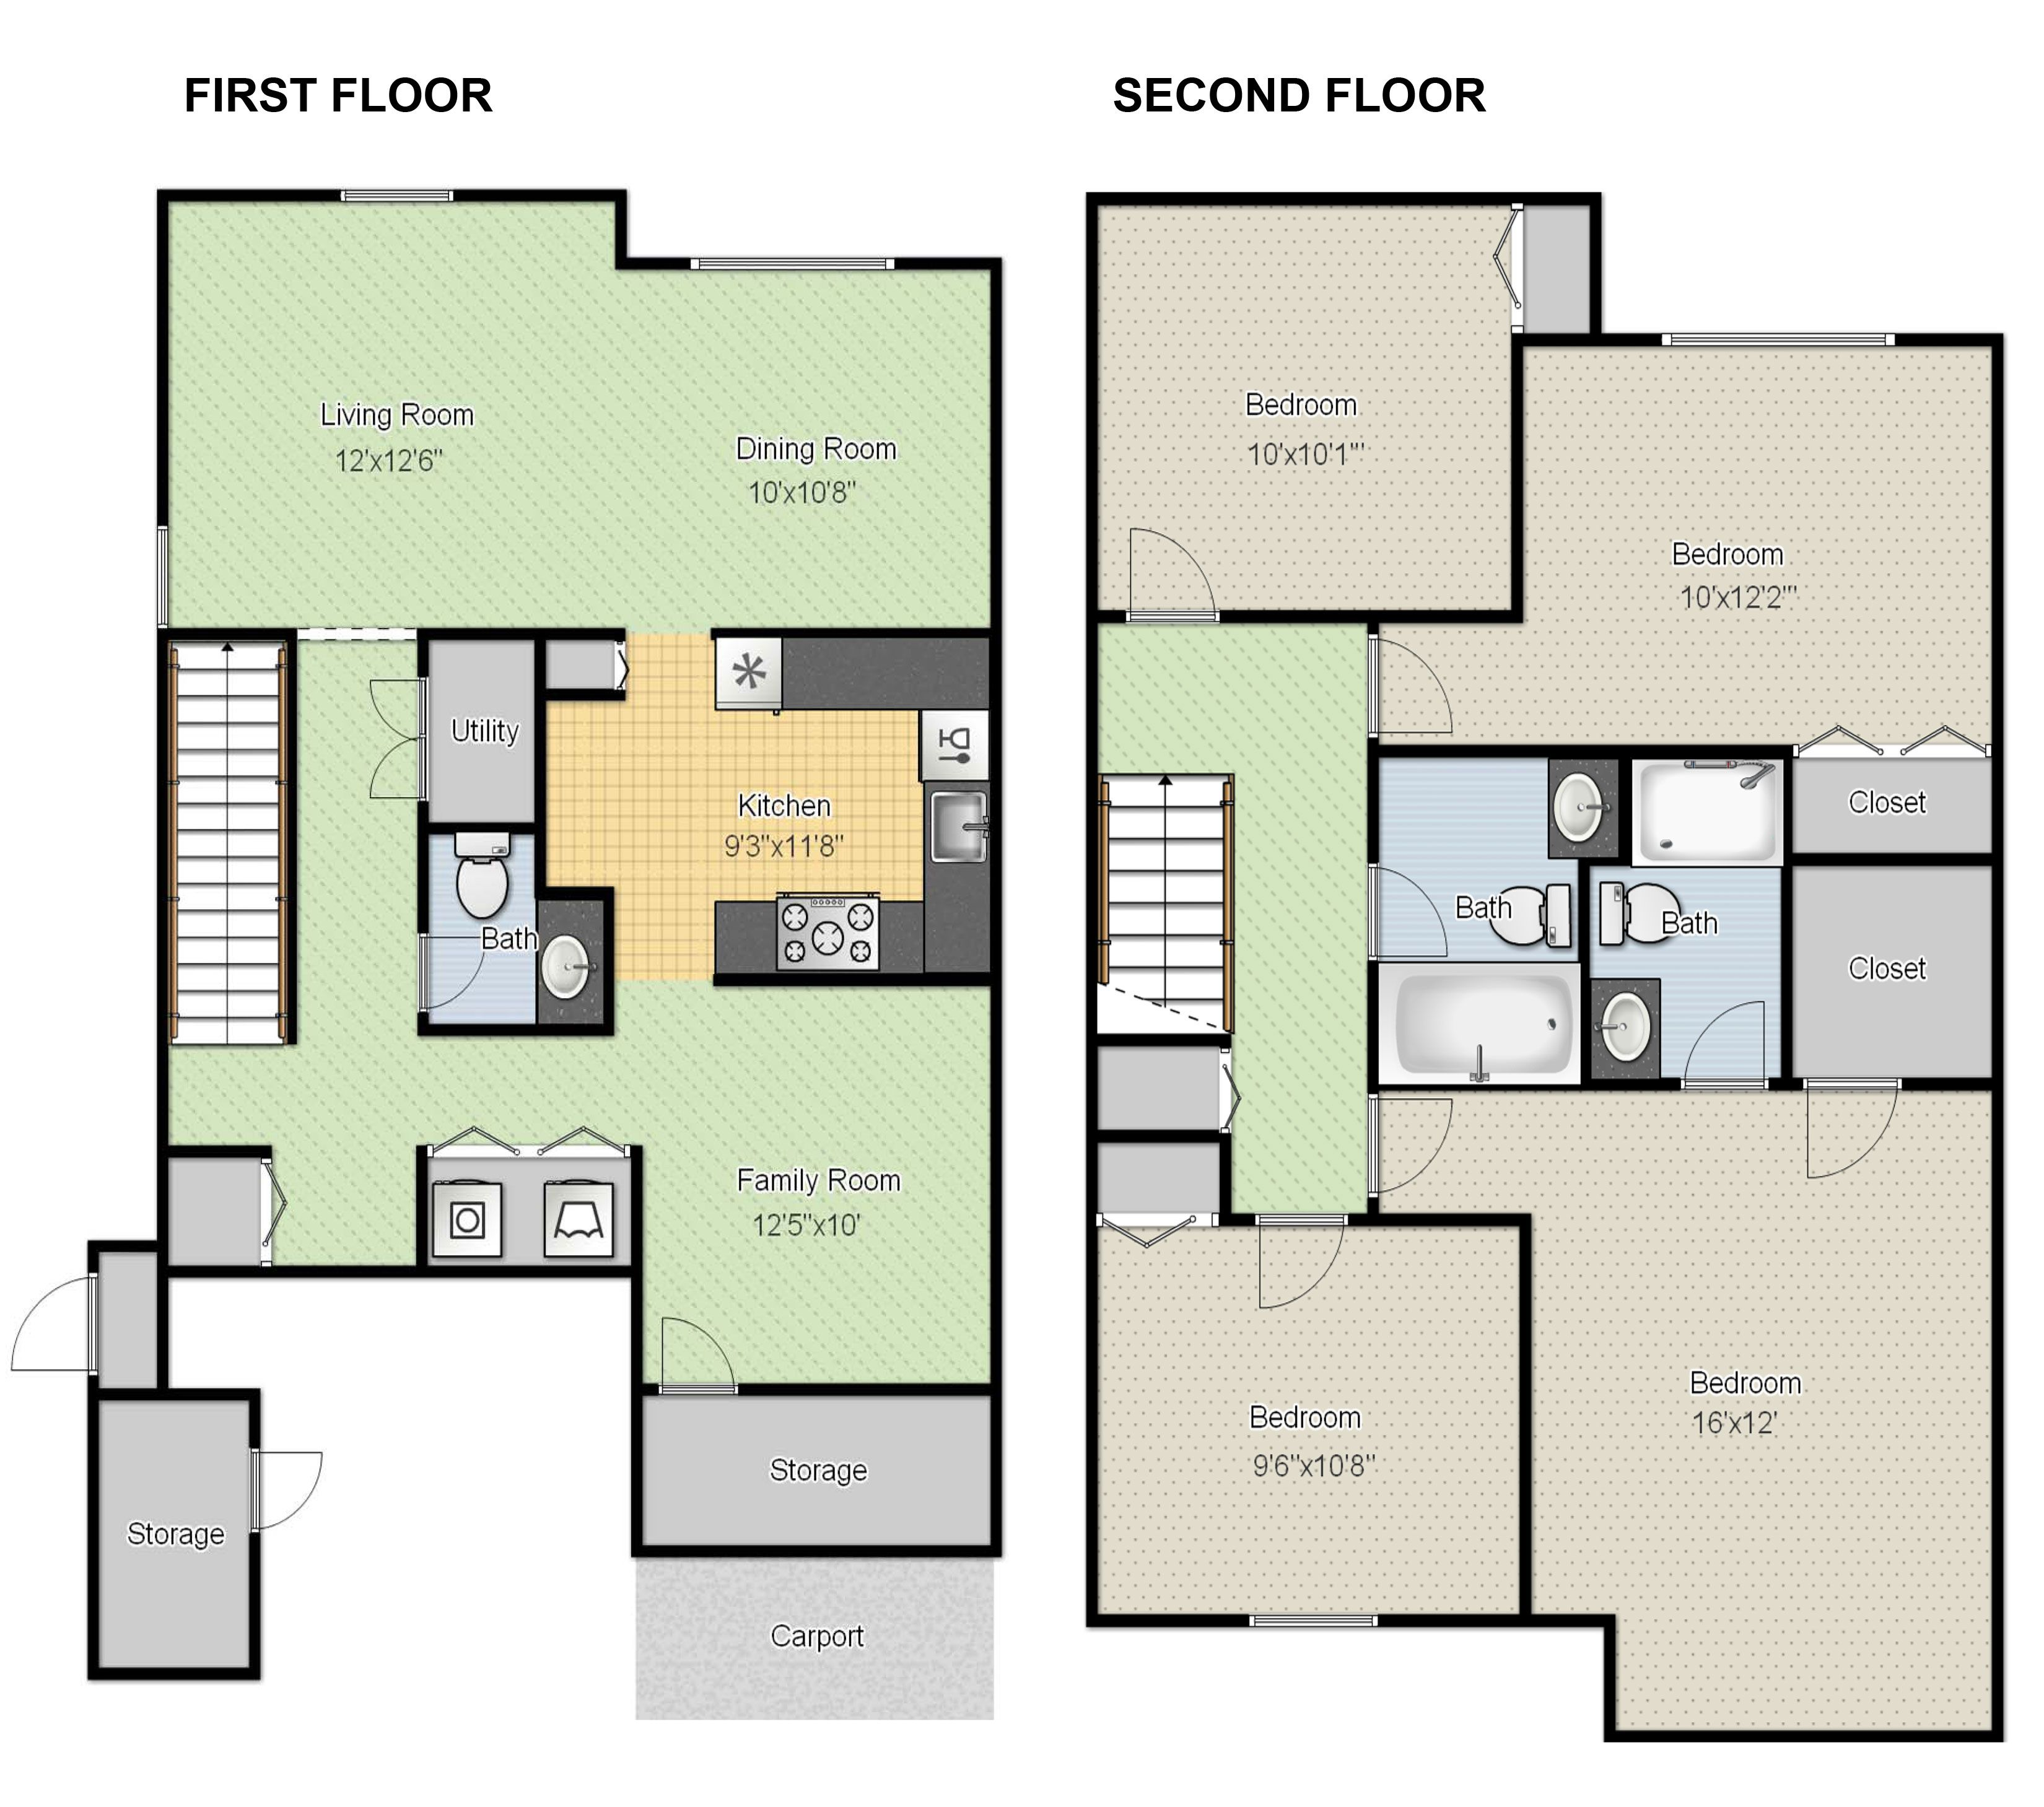 plans online free floor plans design floor plans house floor plans